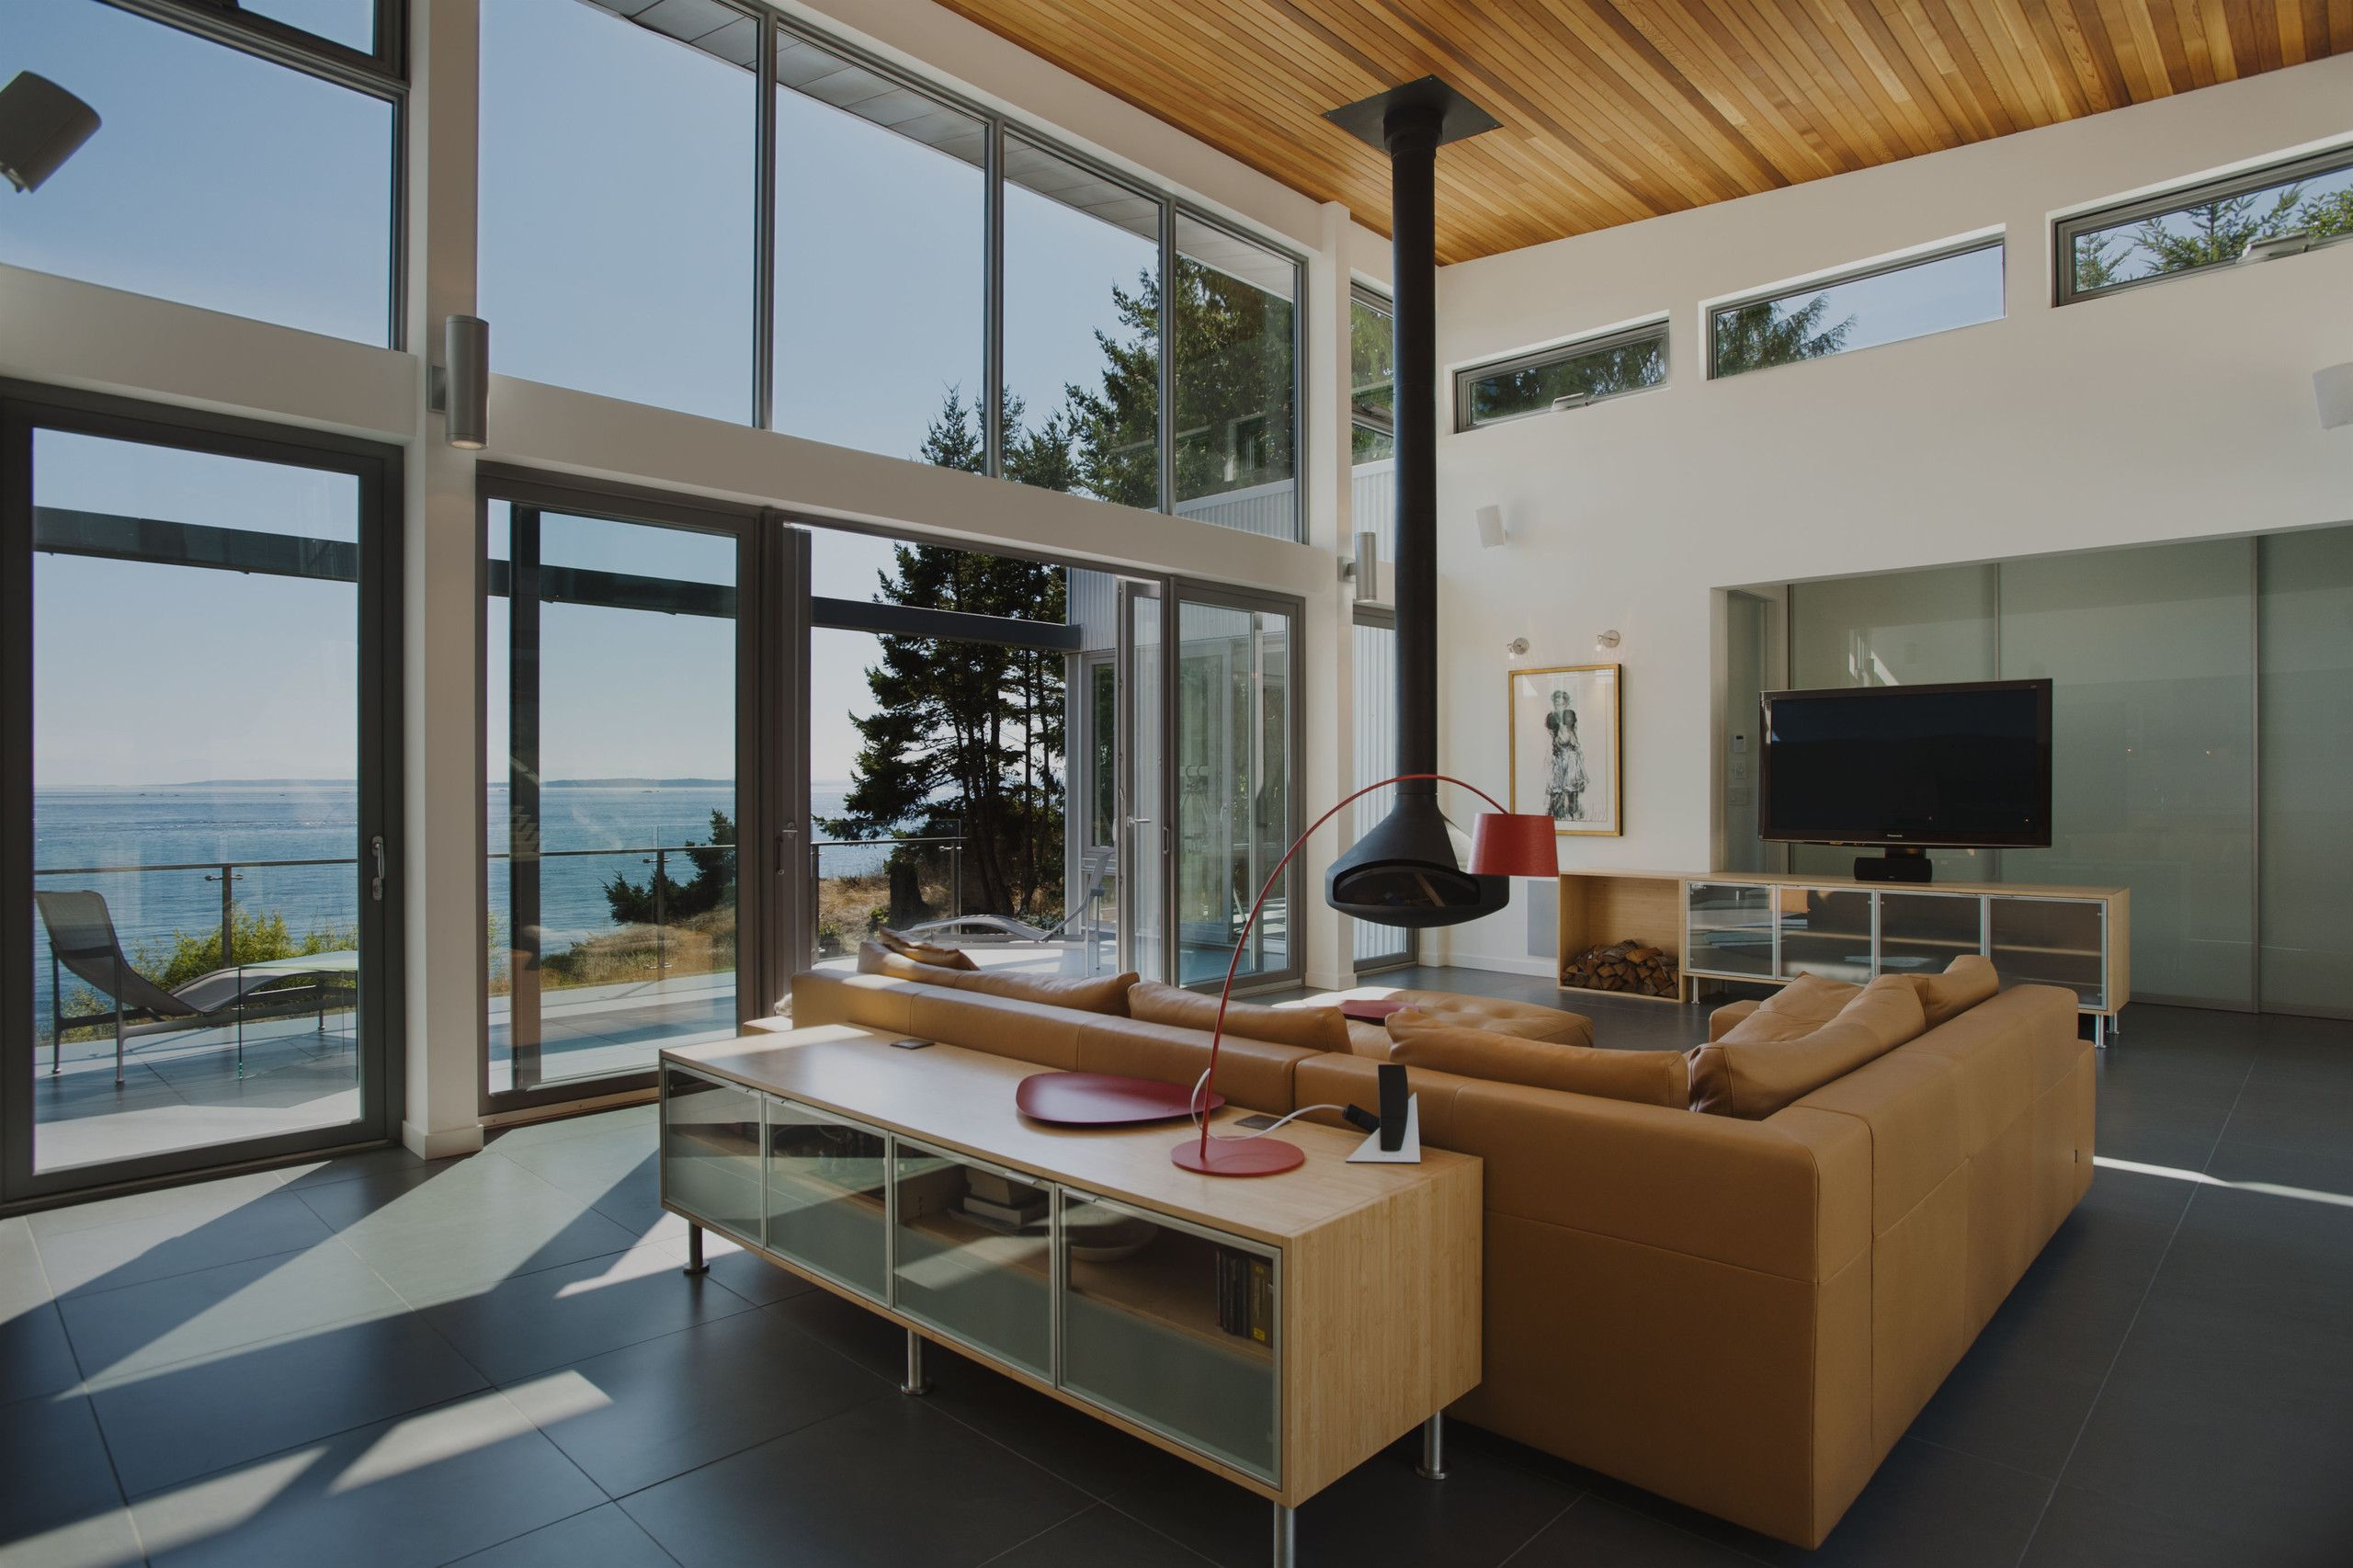 Classic Window Products | Cascadia Windows & Doors ... on Cascadia Outdoor Living Spaces id=17989